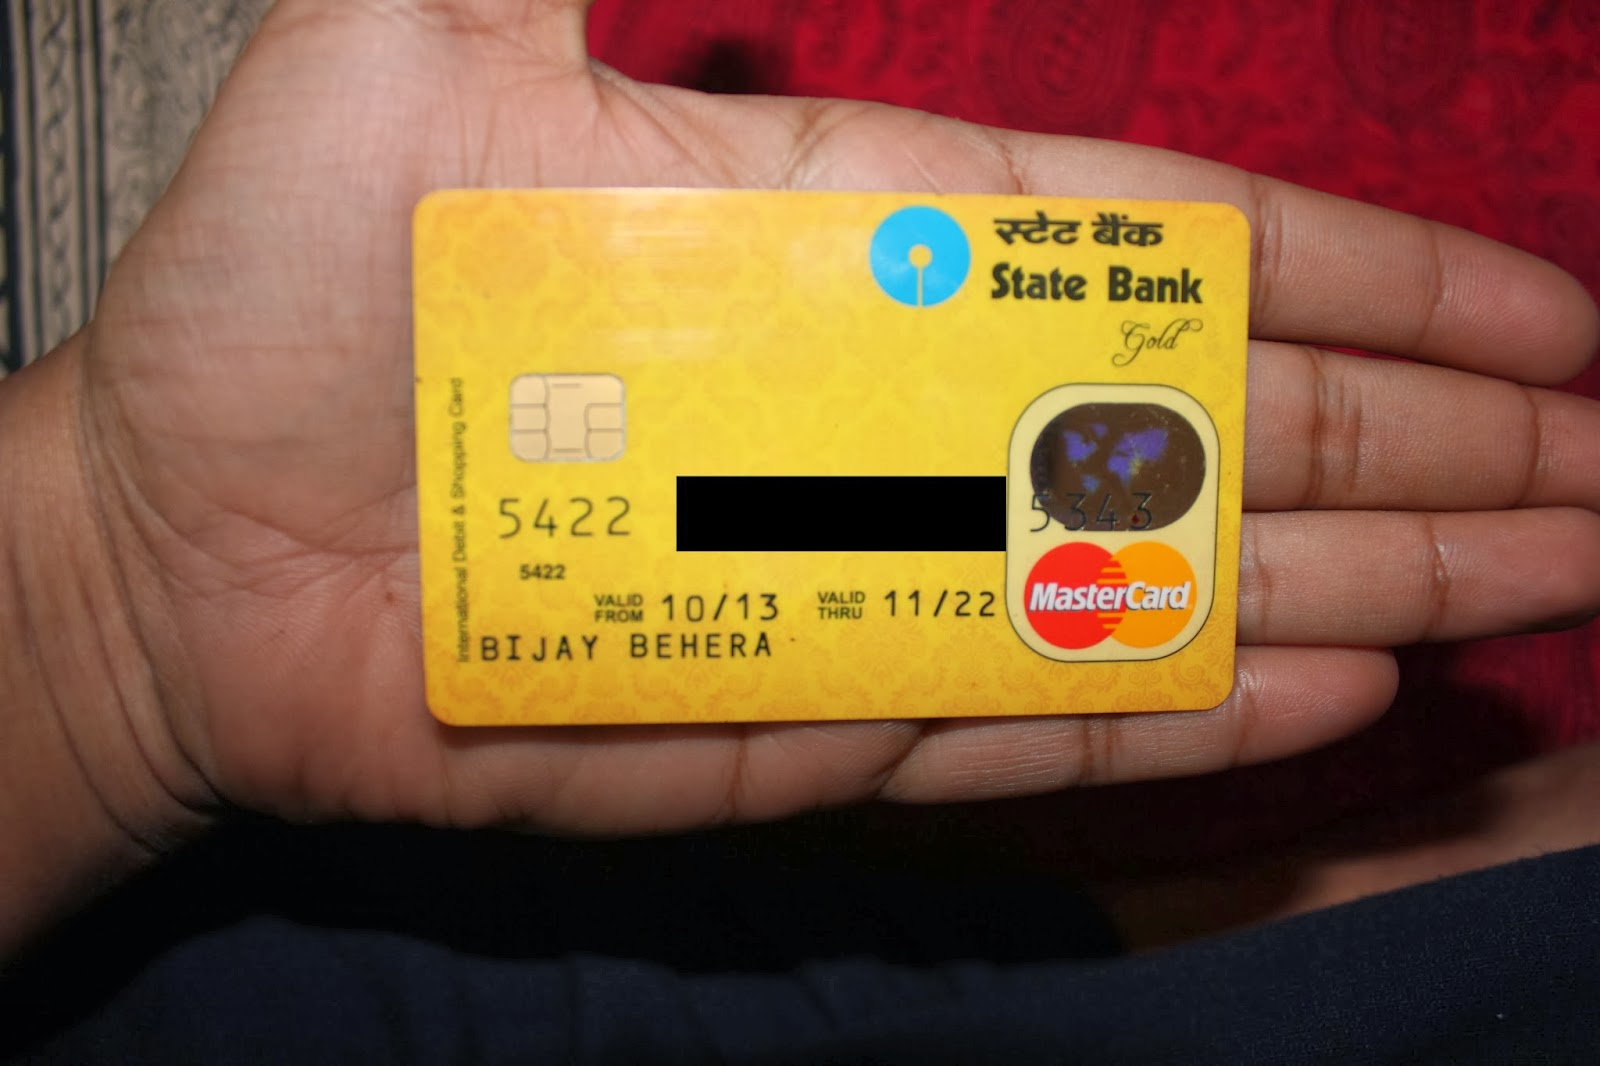 debit card of state bank of india